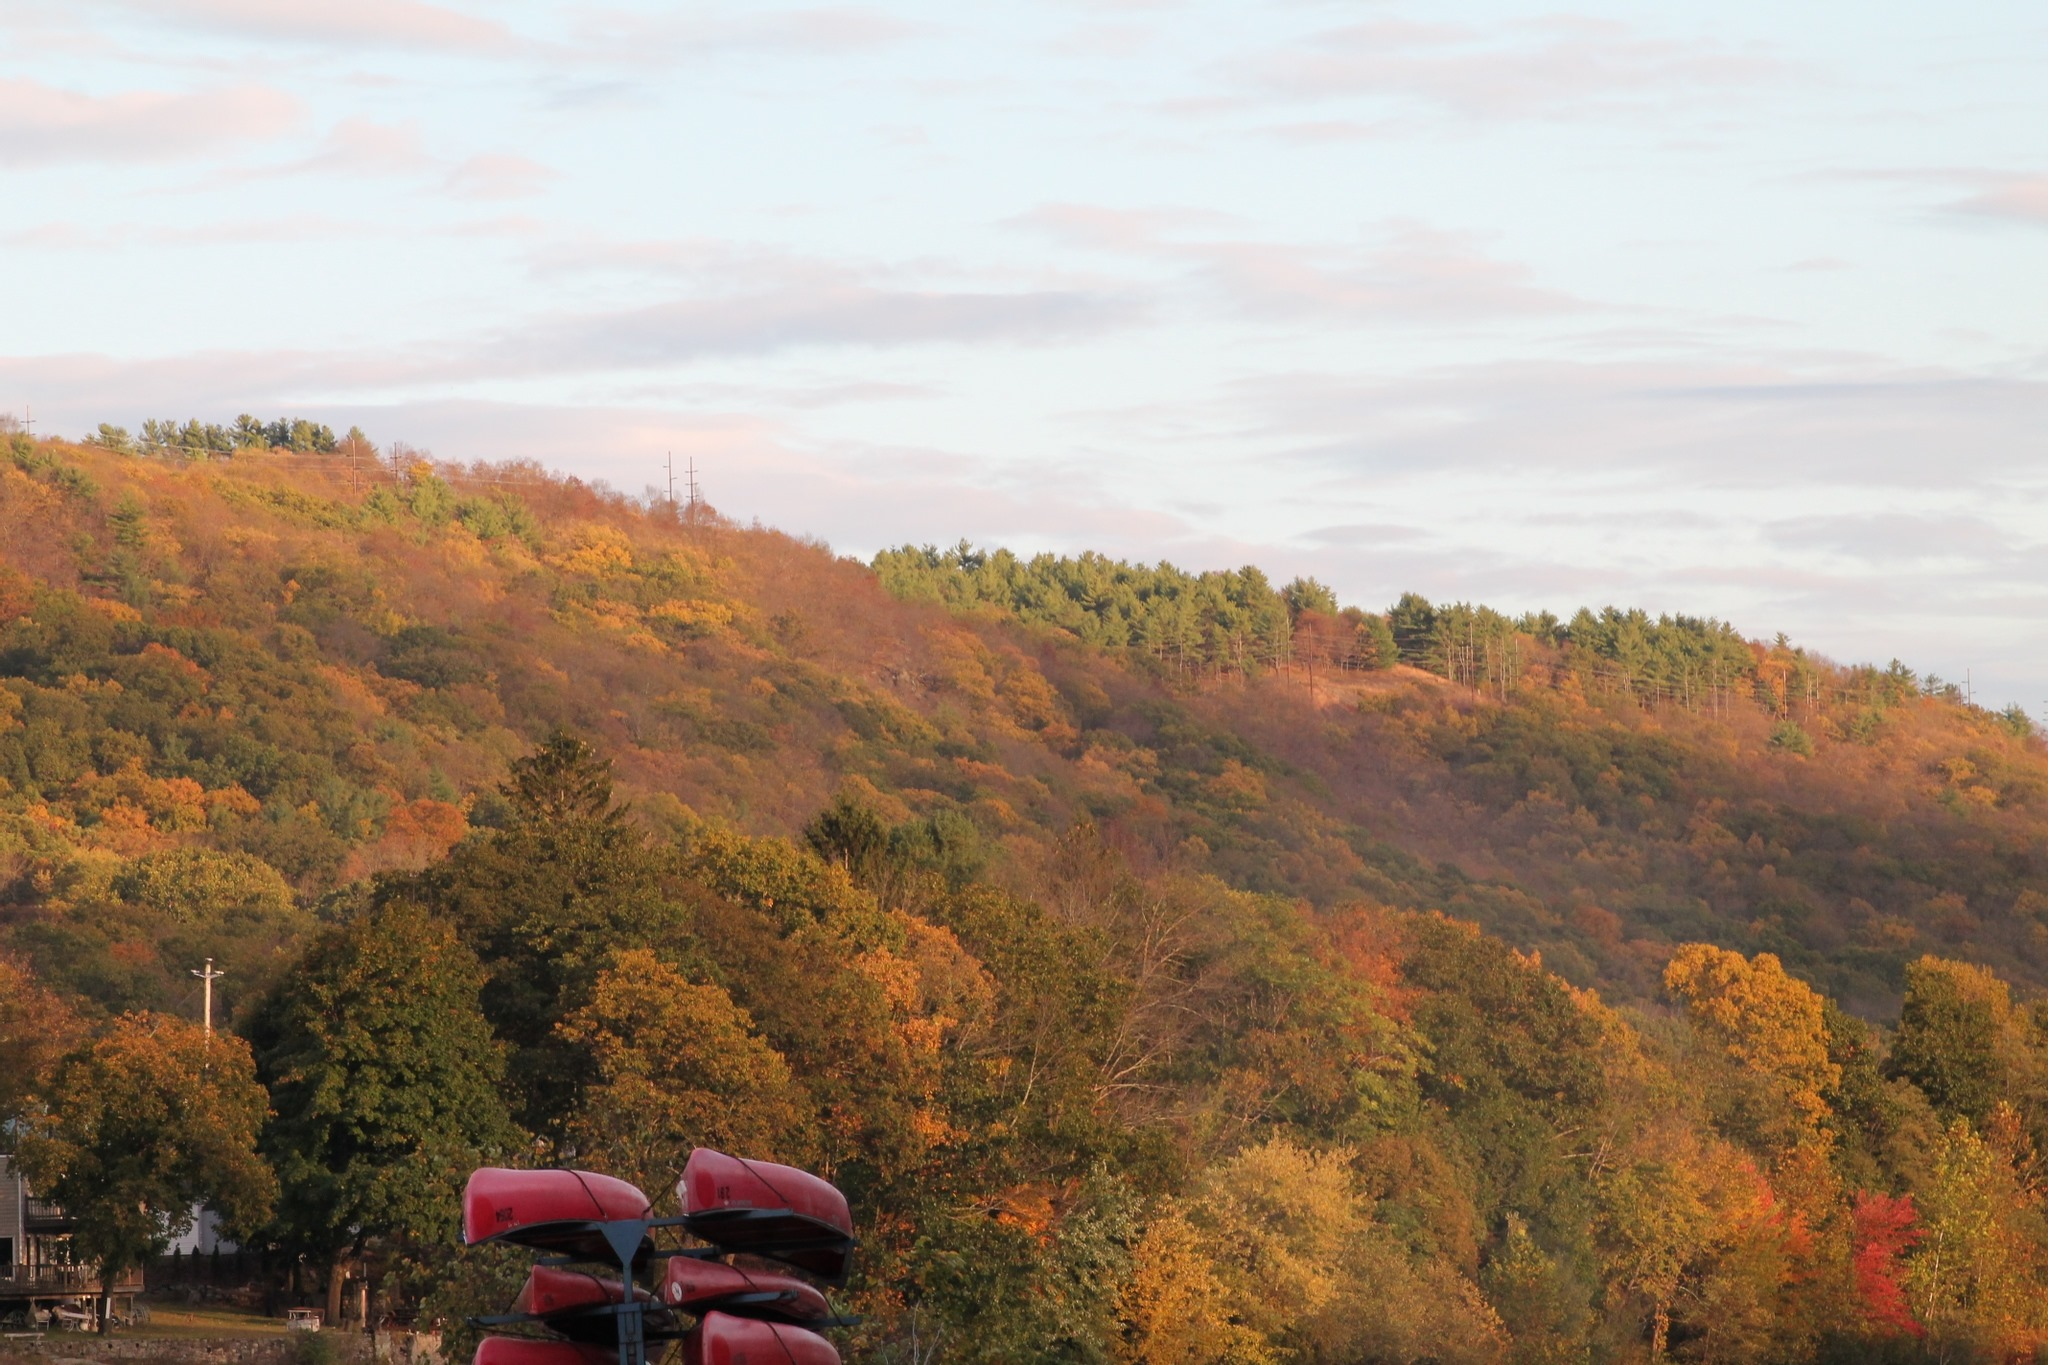 Kayaks piled up next to large hill with fall colors at campground